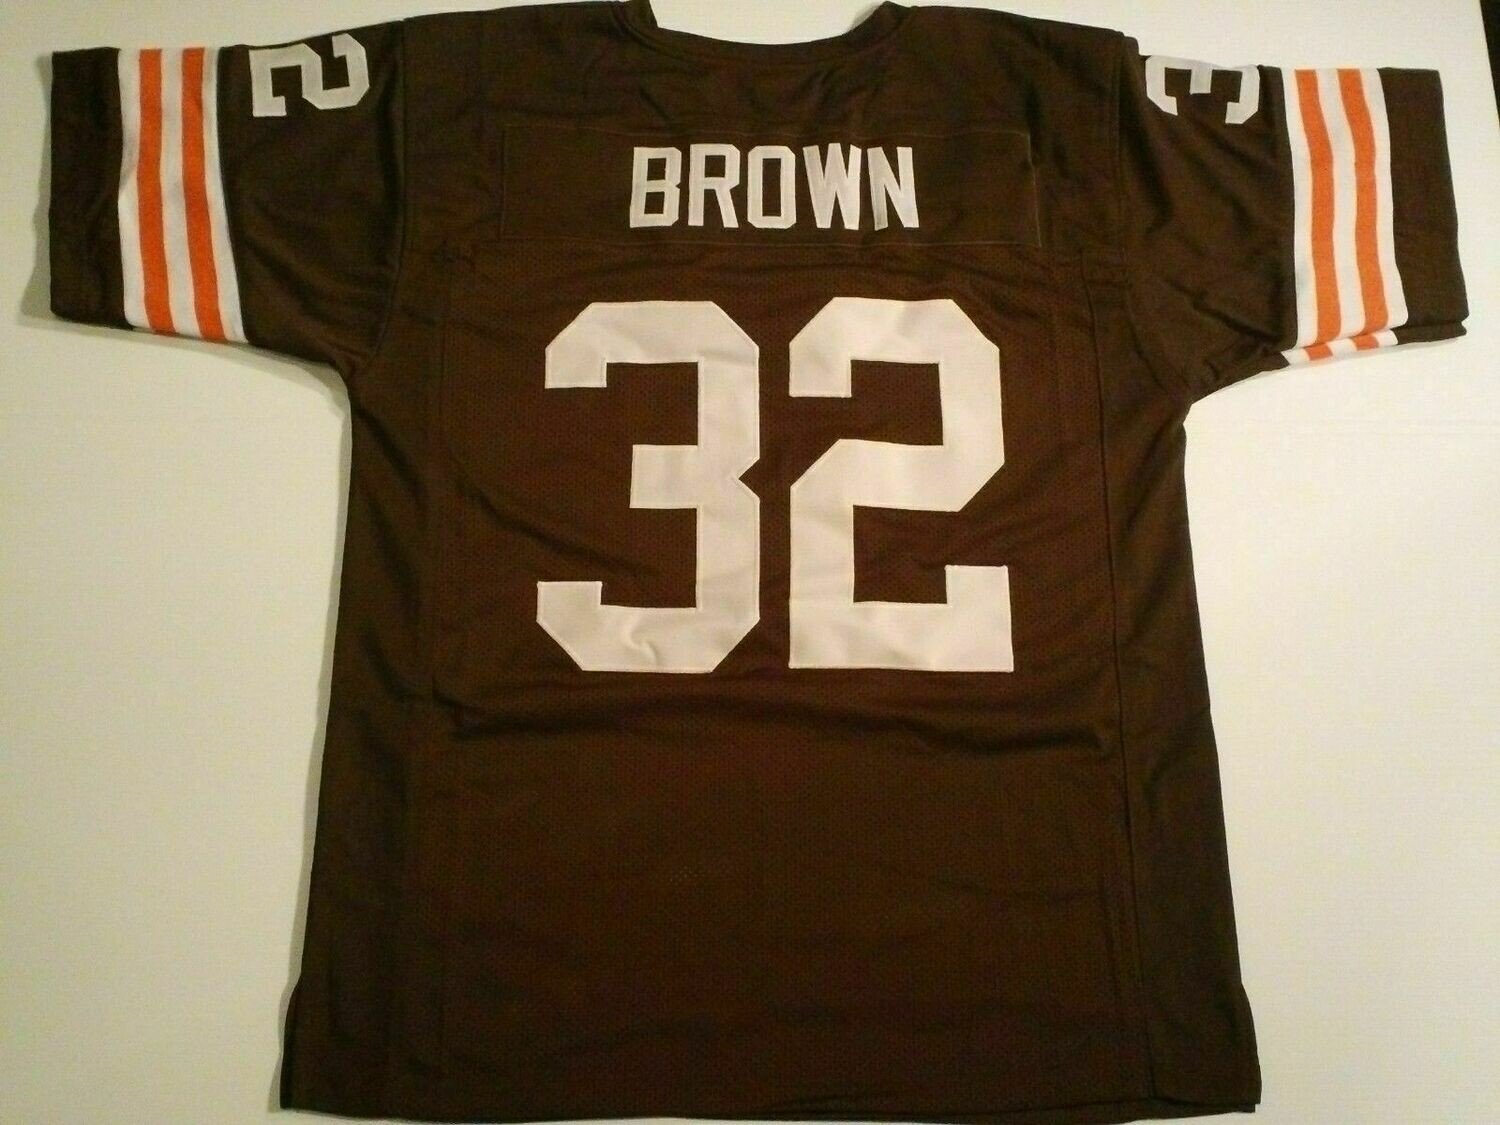 UNSIGNED CUSTOM Sewn Stitched Jim Brown Brown Jersey